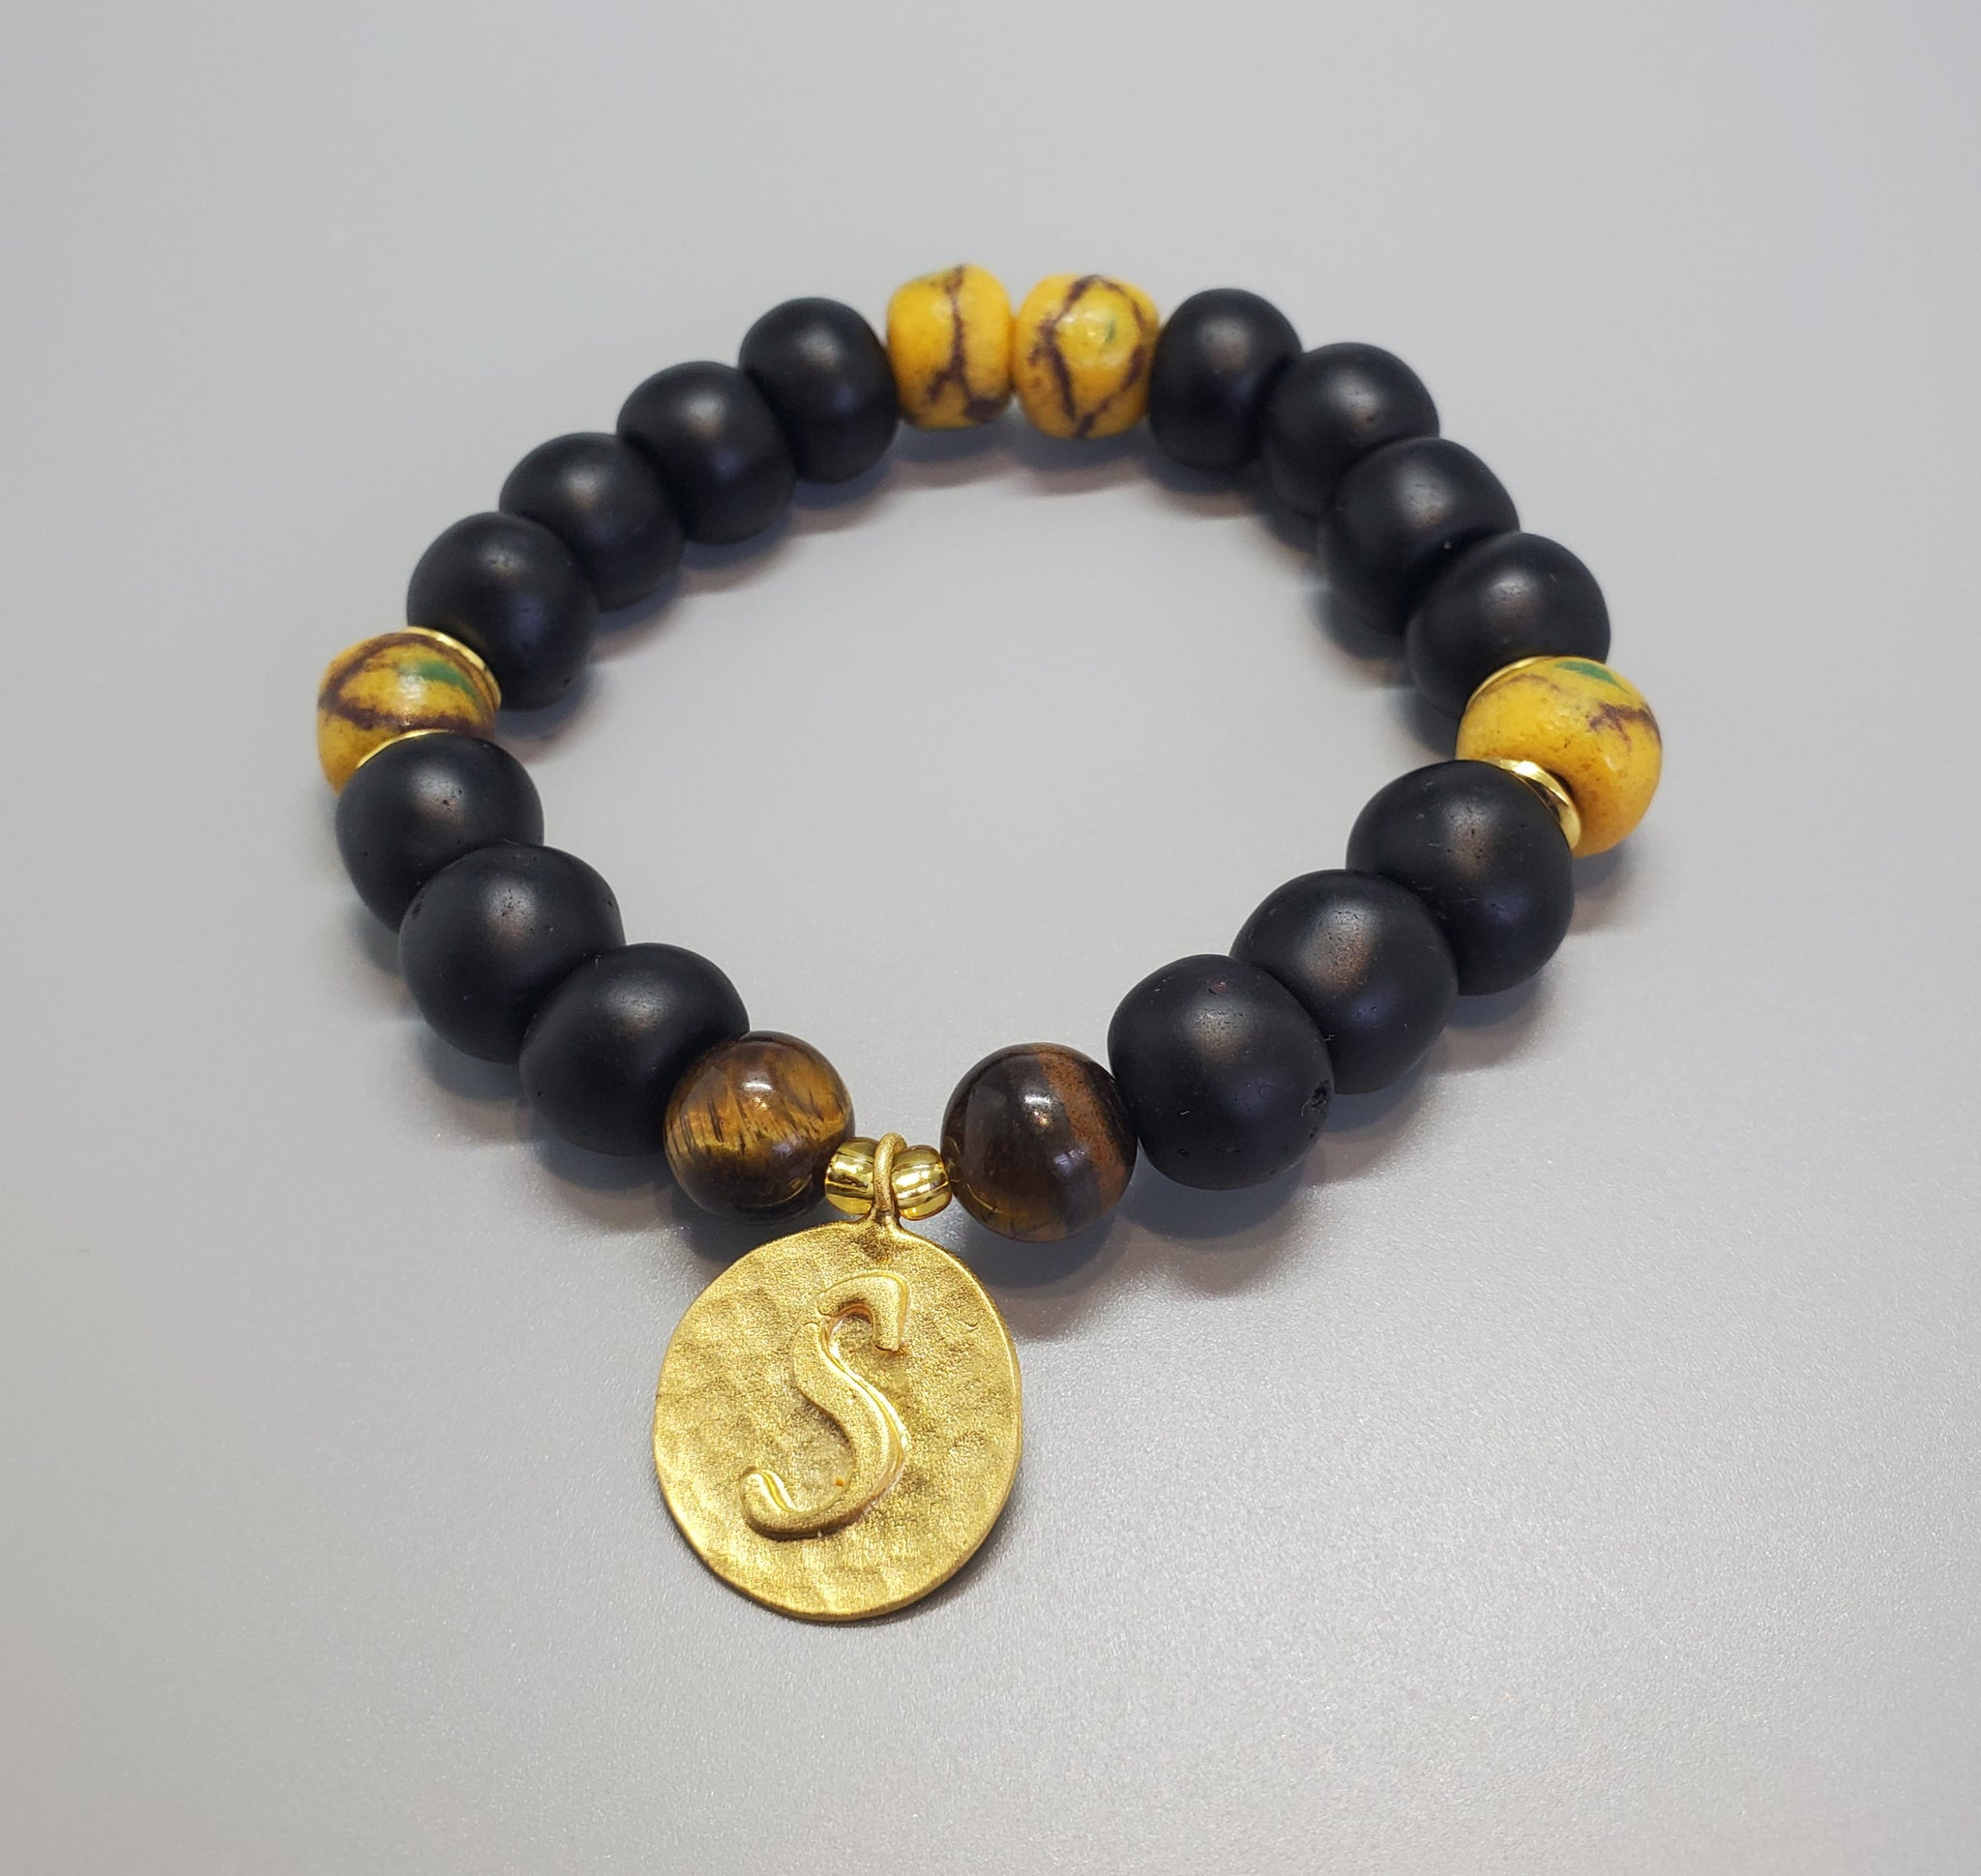 "Black, Must. Krobo Beads, Tiger Eye, 22K Gold Plated Plated Brass ""S"" Charm, Brass, Unisex Stretch Bracelet"